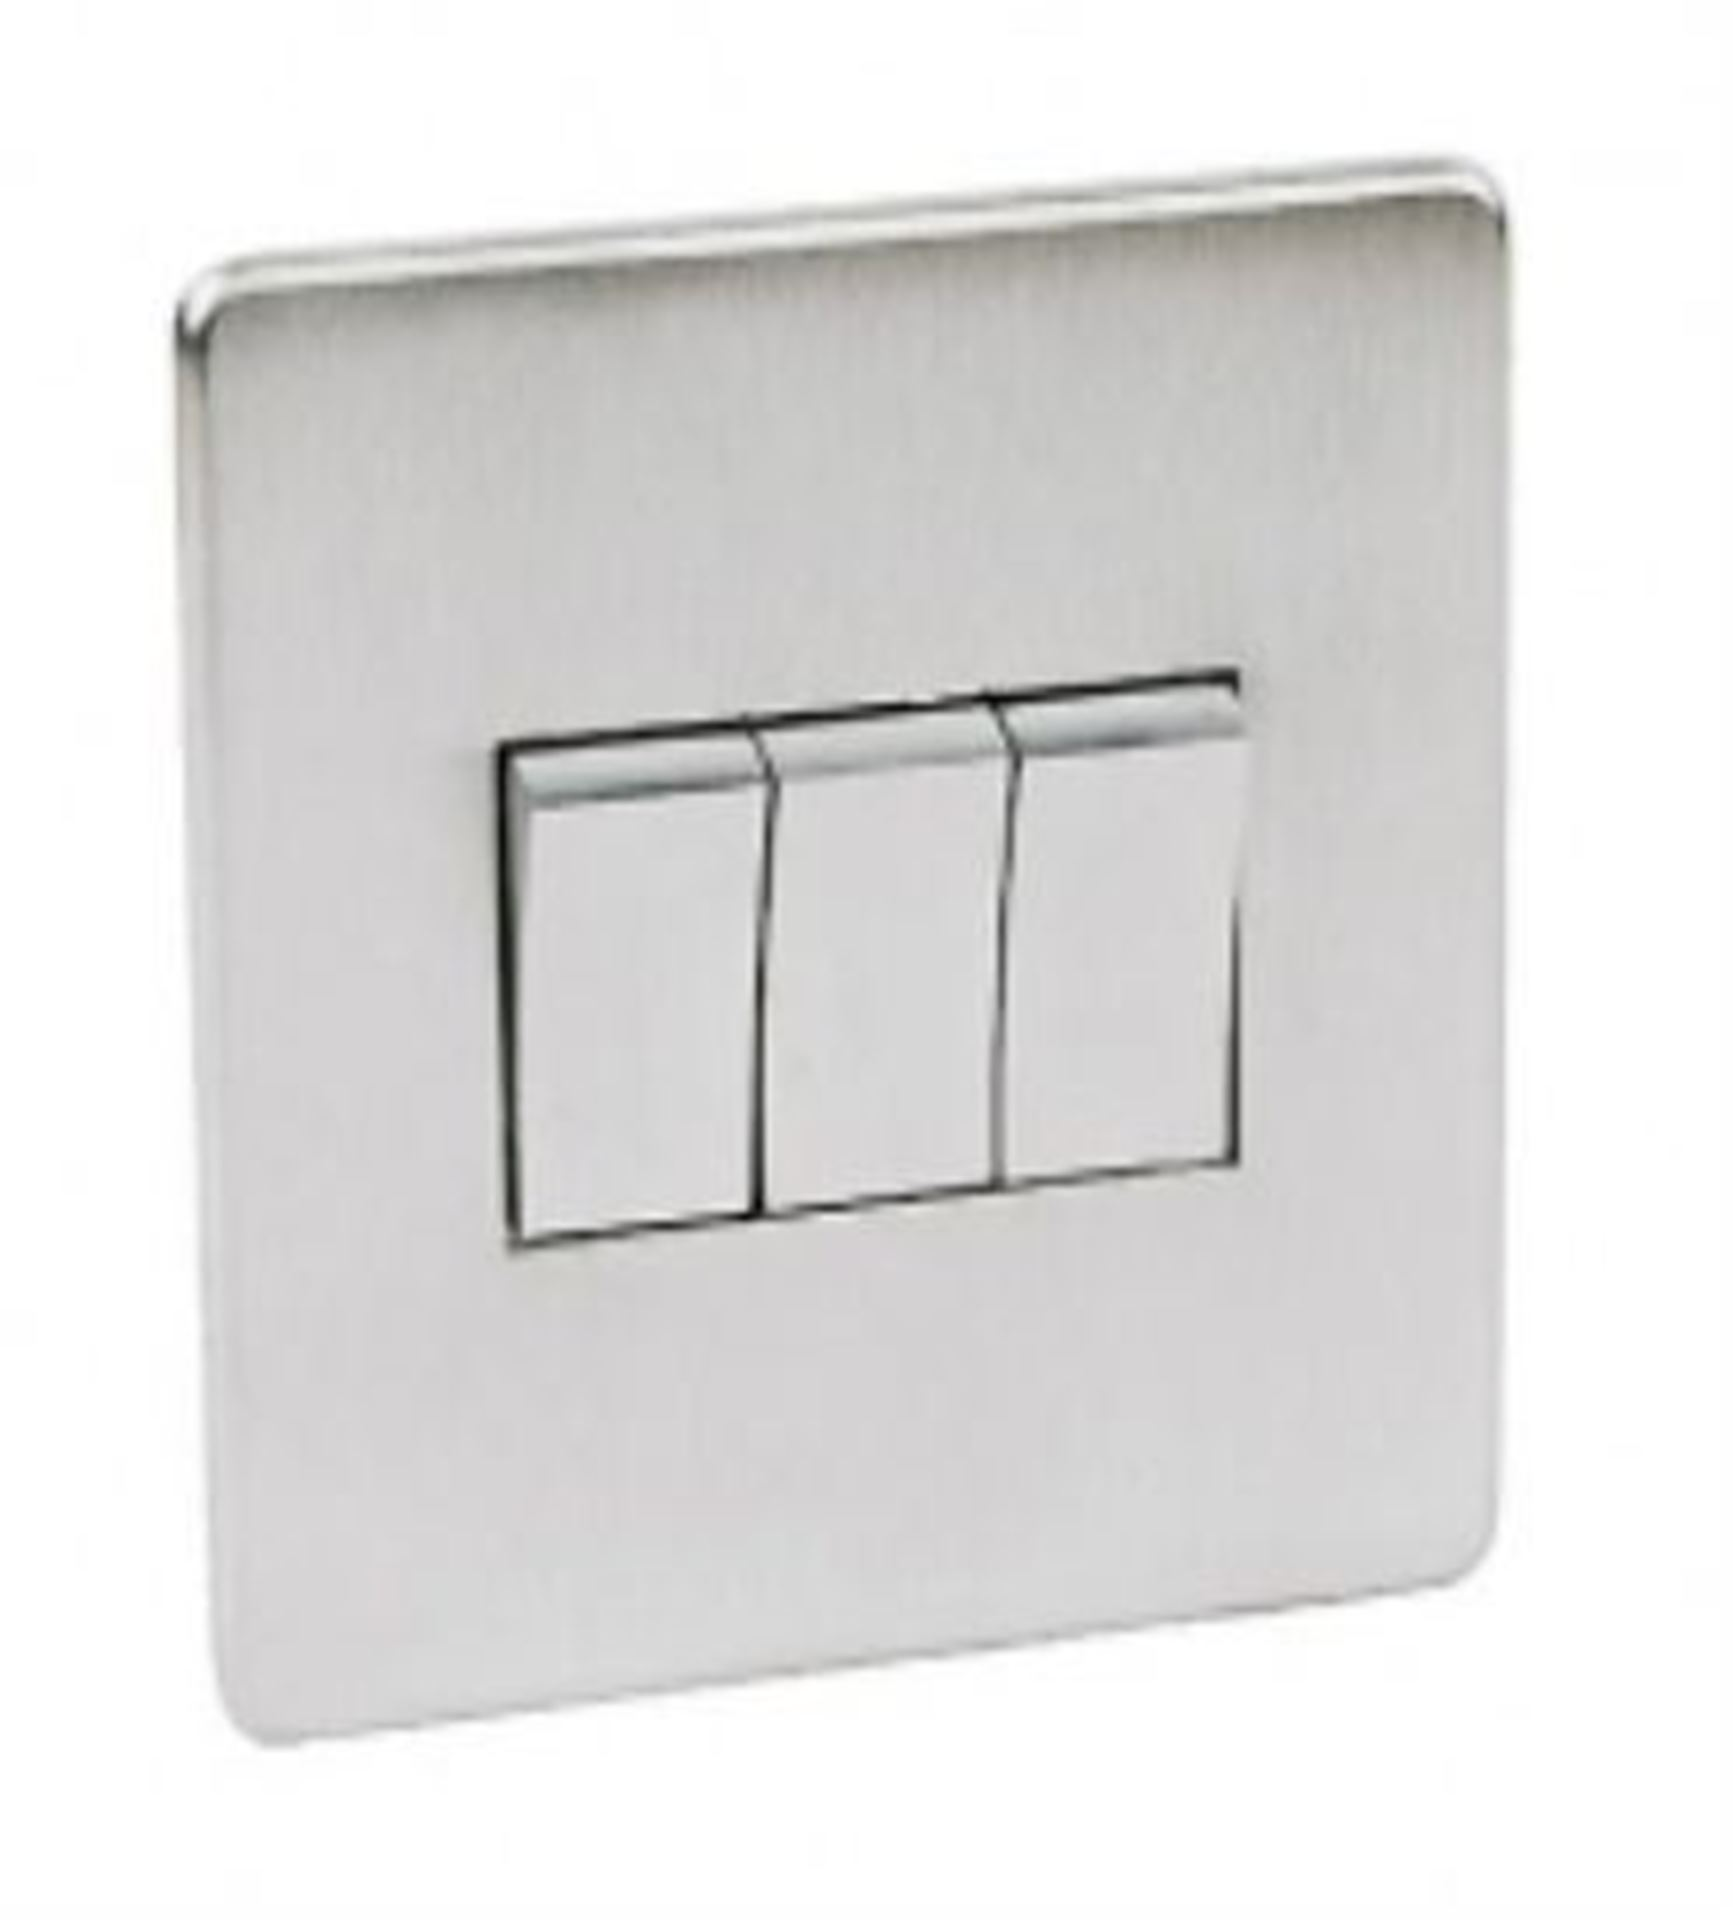 Crabtree Platinum Satin Chrome 3 Gang Light Switch 7173/SC